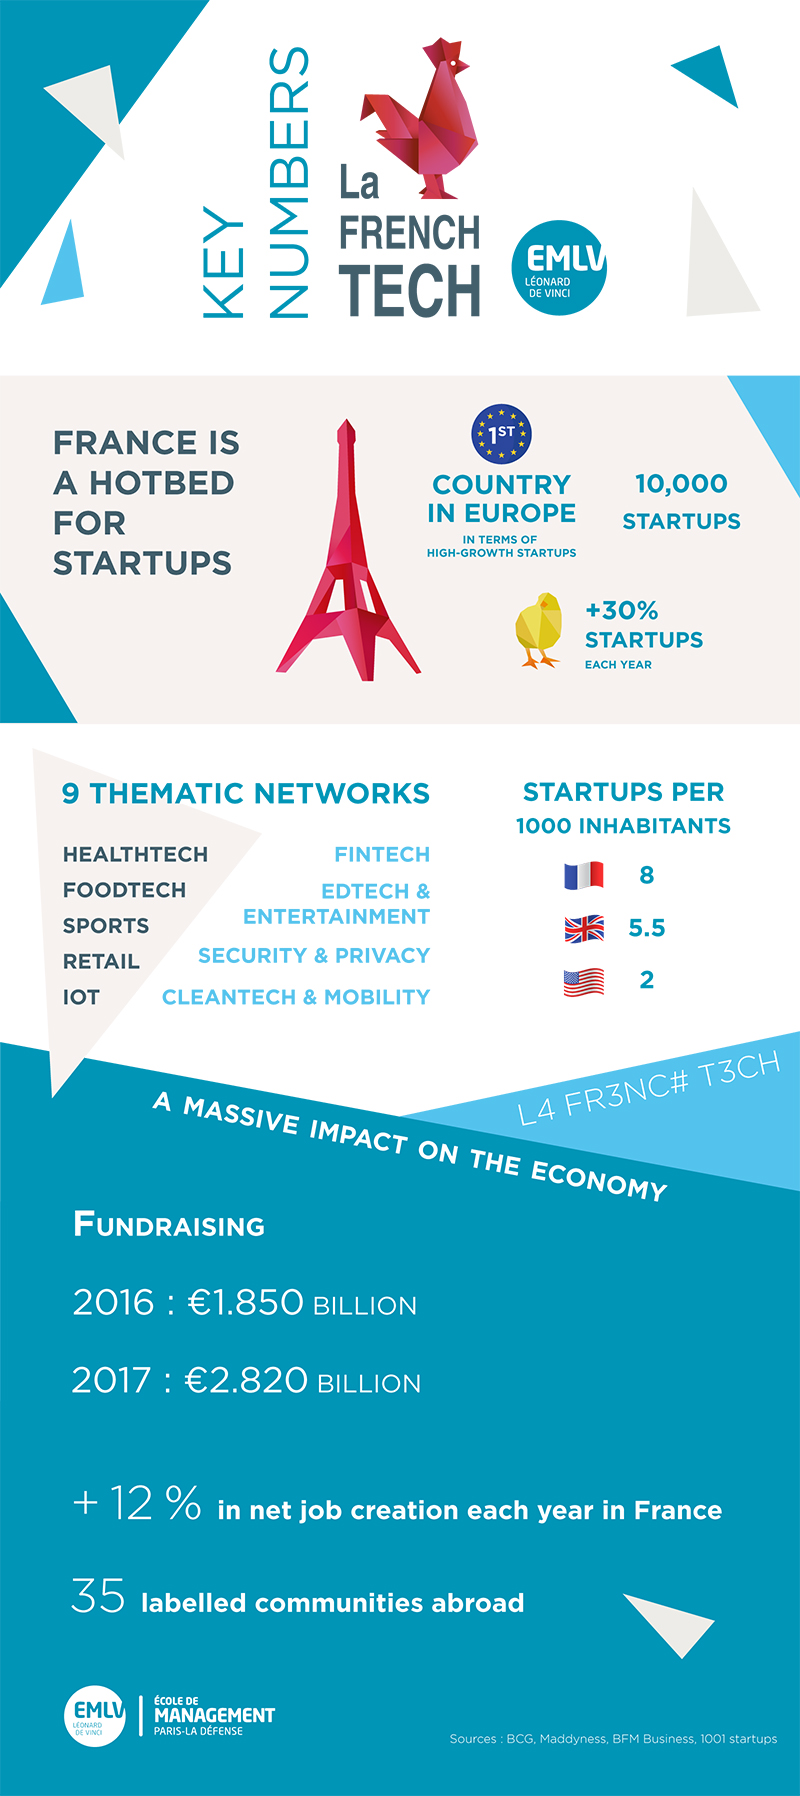 EMLV FrenchTech - Infographic: Learn to Know the French Startups ecosystem called FrenchTech